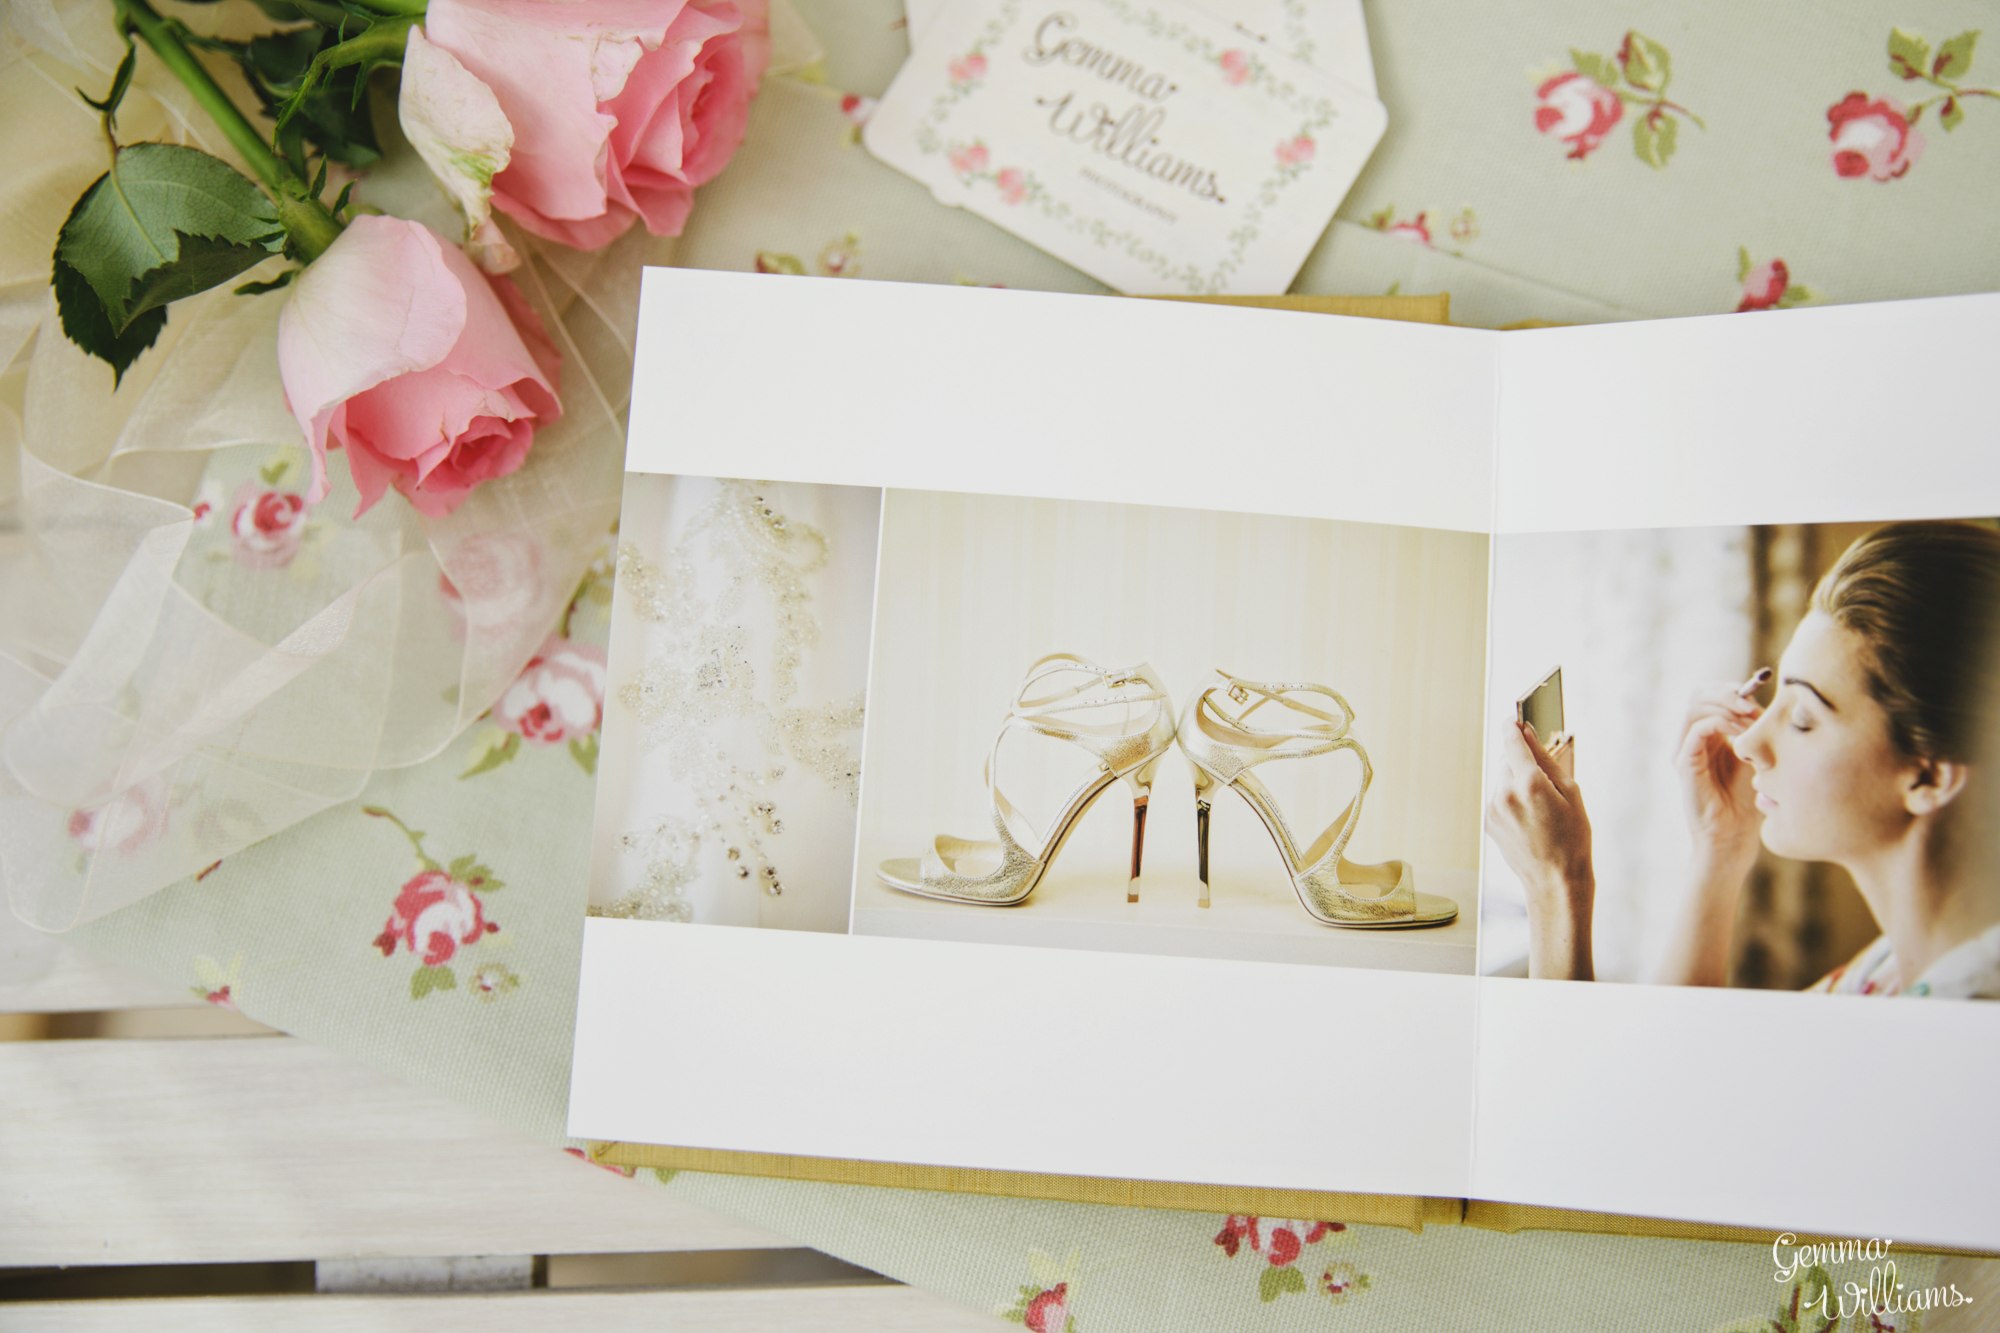 GemmaWilliamsPhotography-WeddingAlbums019.jpg